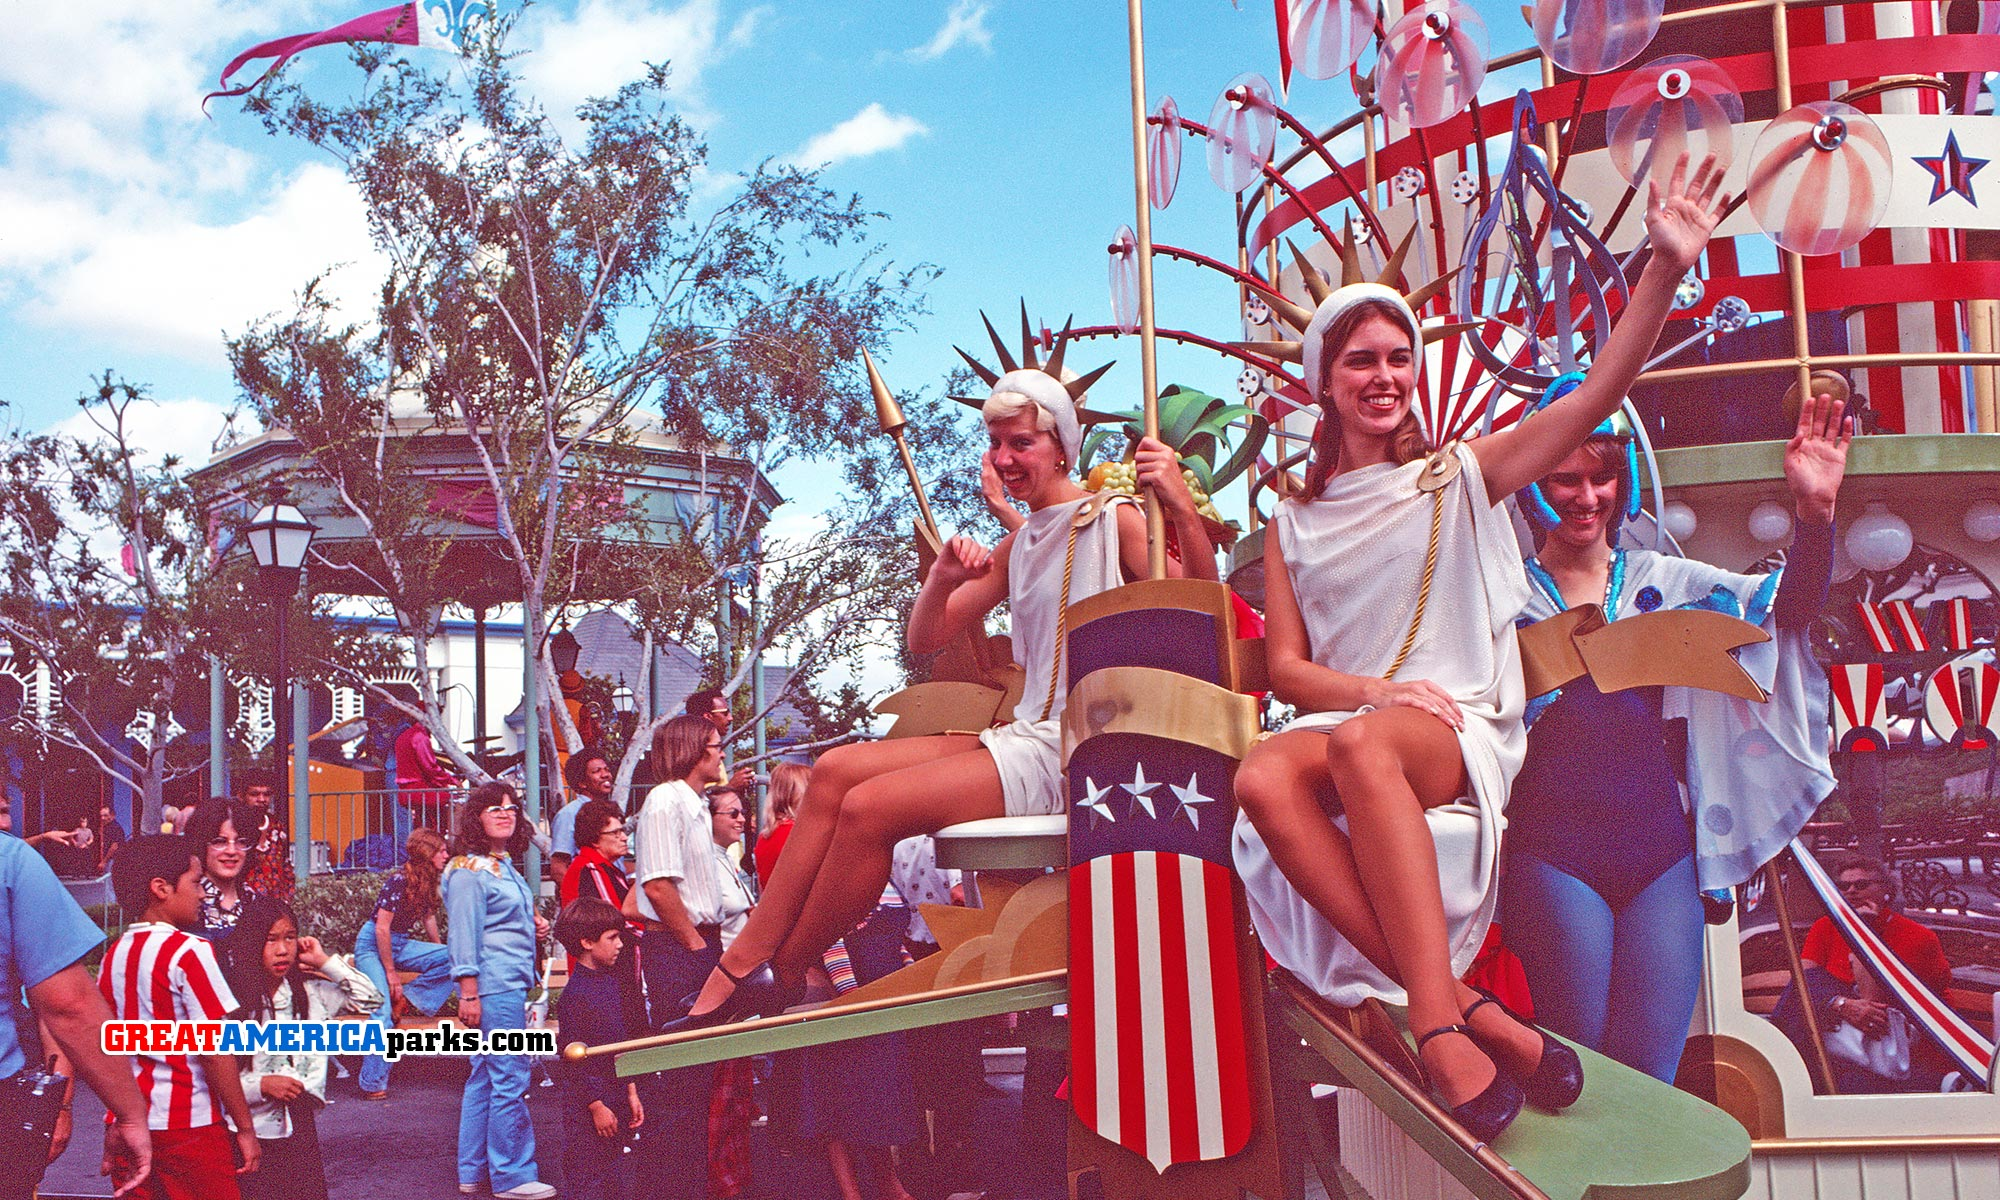 Merry Mardi Gras Parade, Spirit of America in Orleans Place